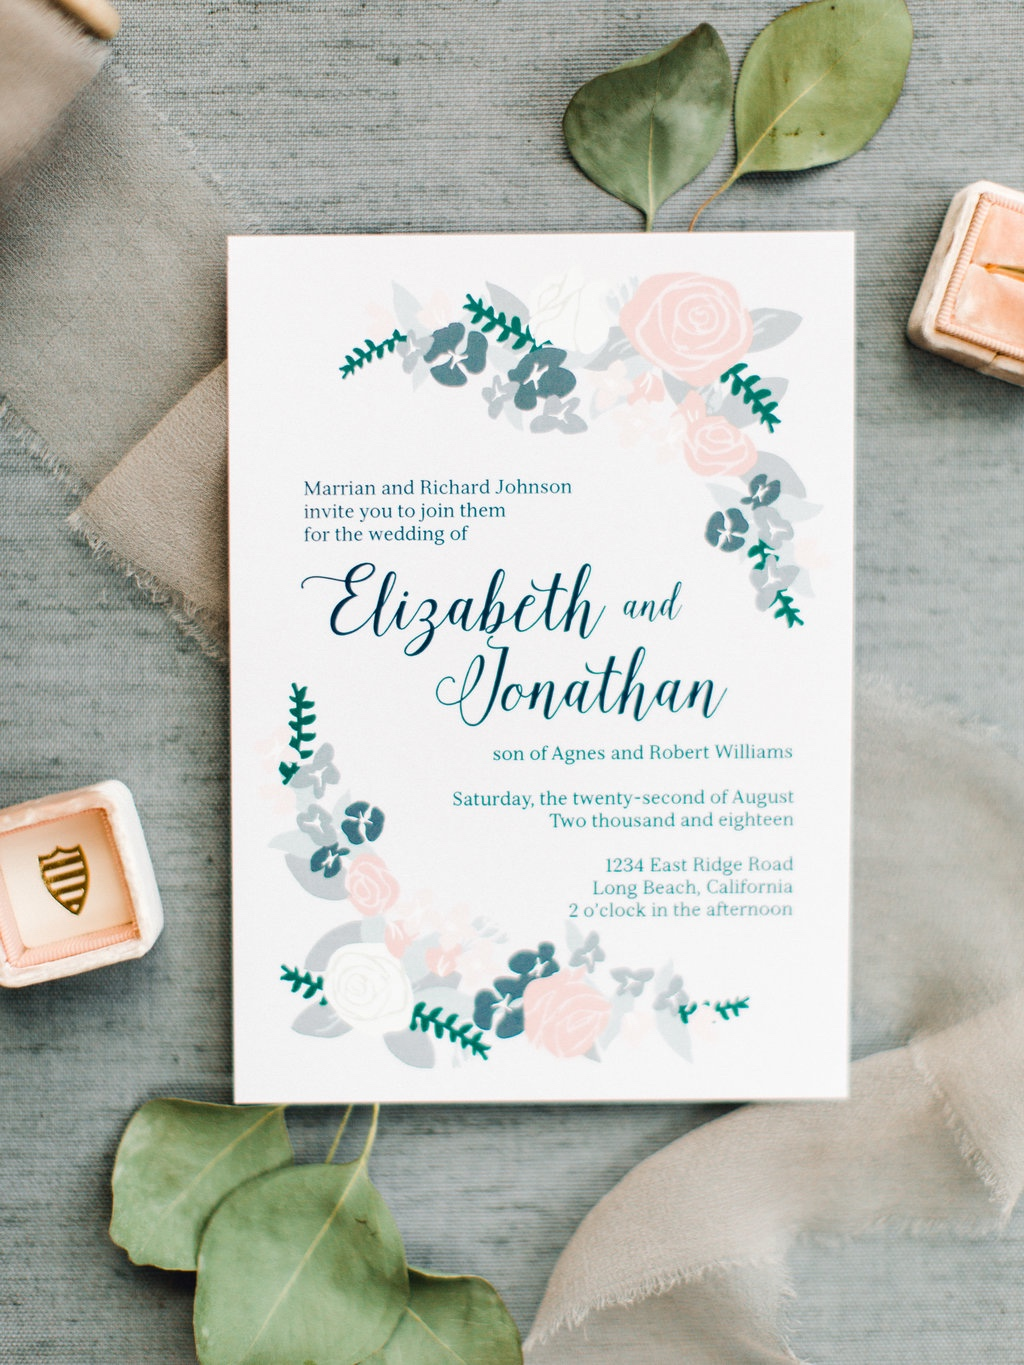 Rustic chic wedding invitations are a lovely choice for the upcoming autumn wedding season. Customize your invitation using your colors